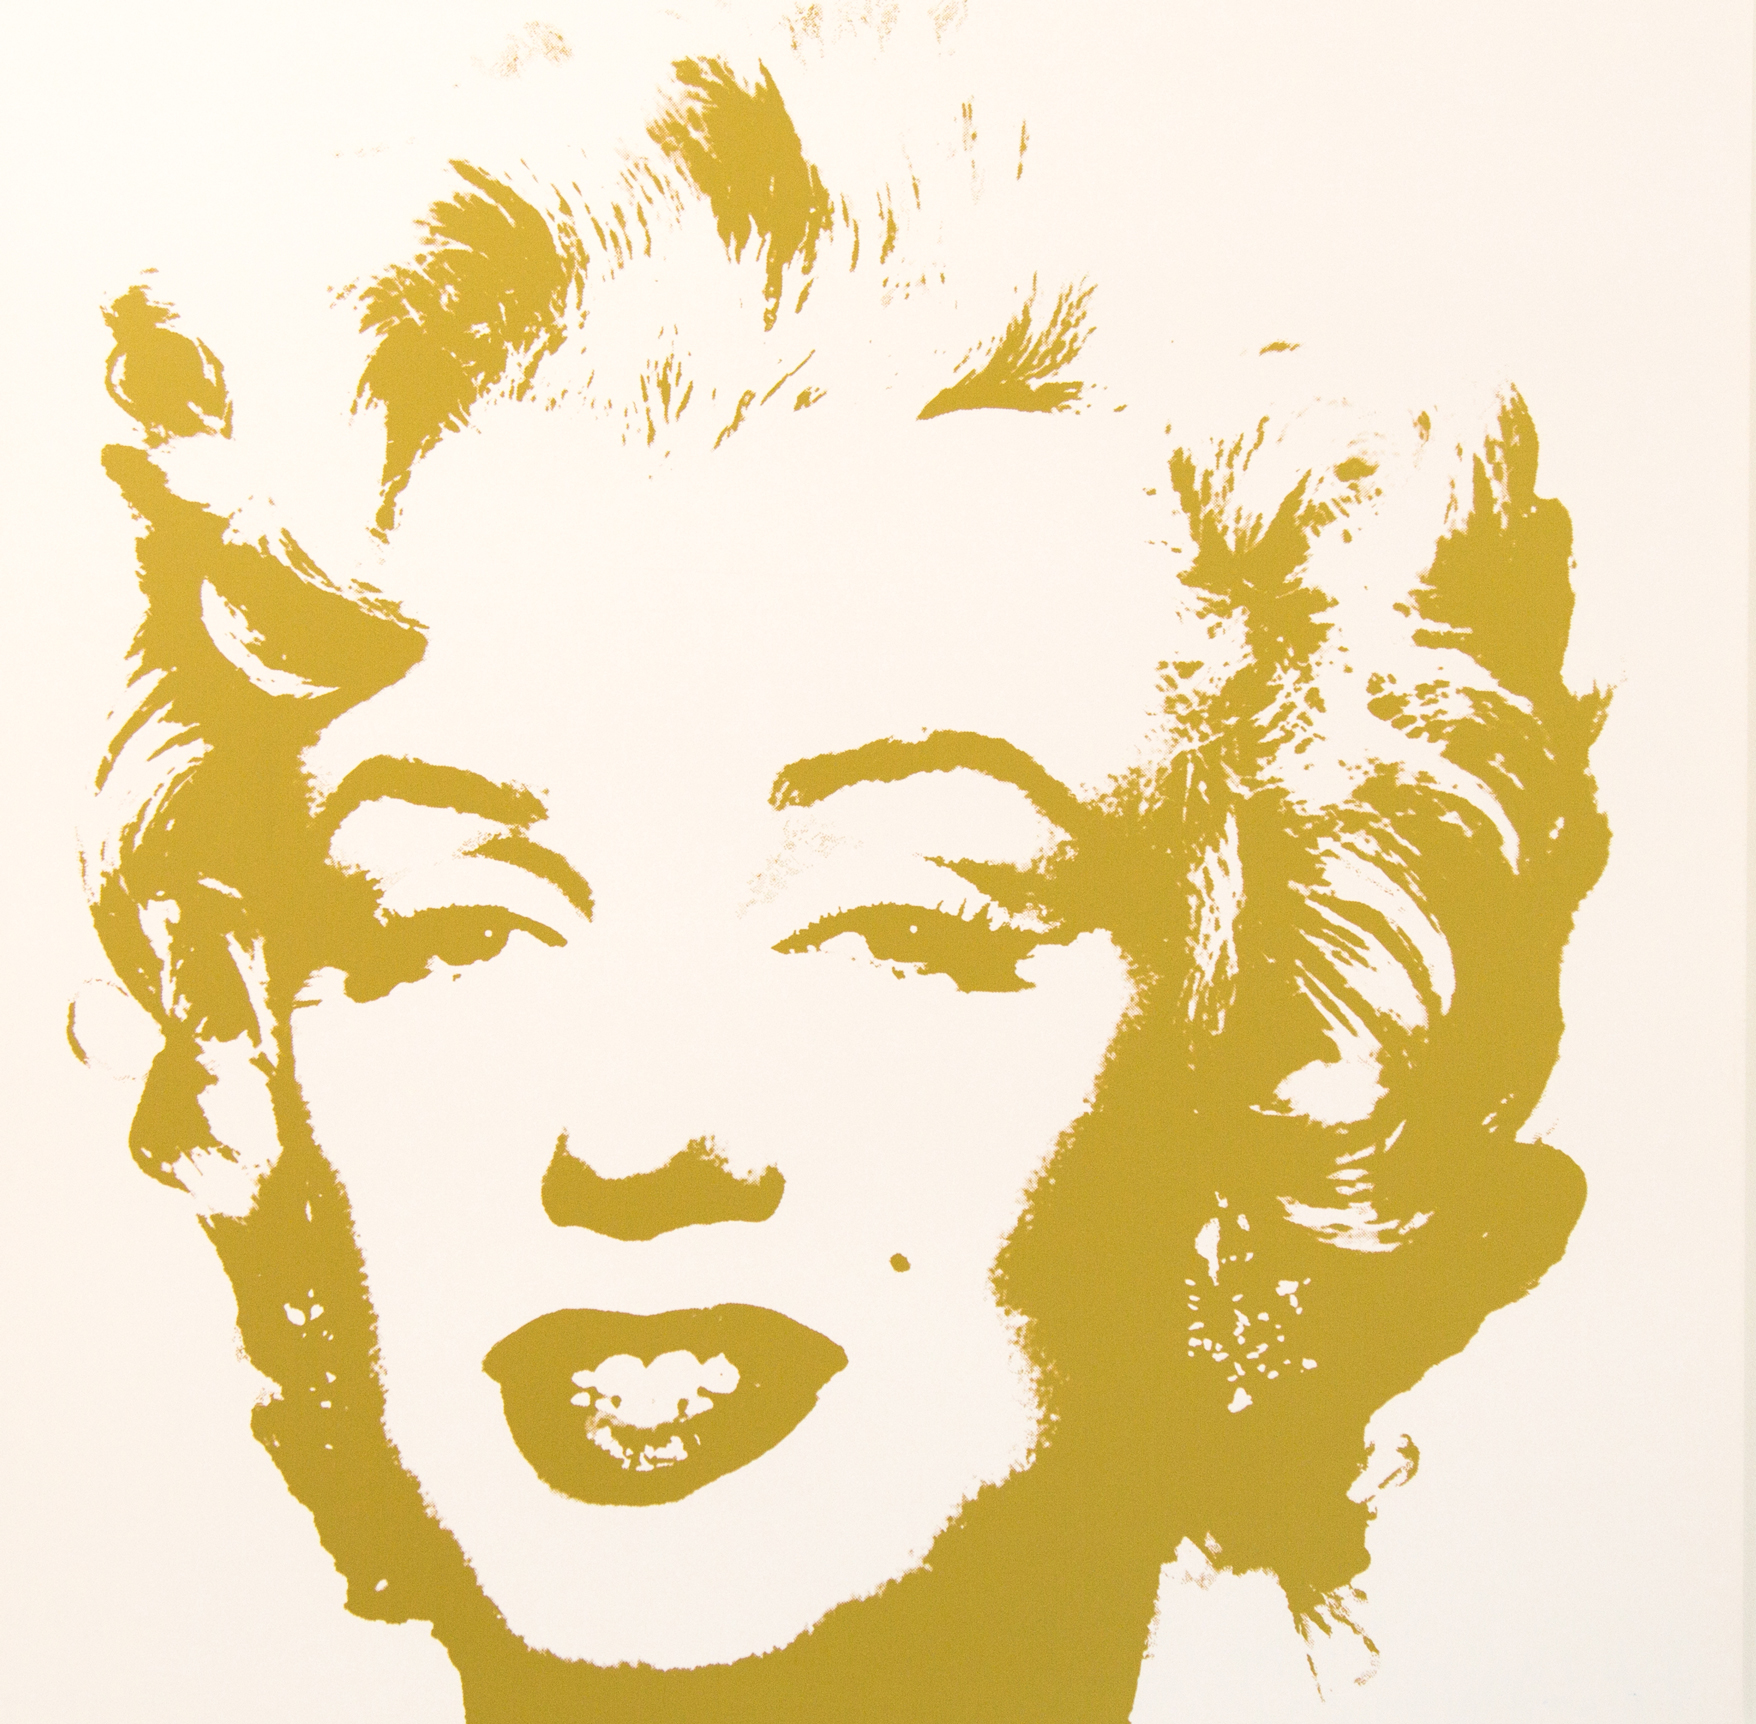 11.41: Golden Marilyn